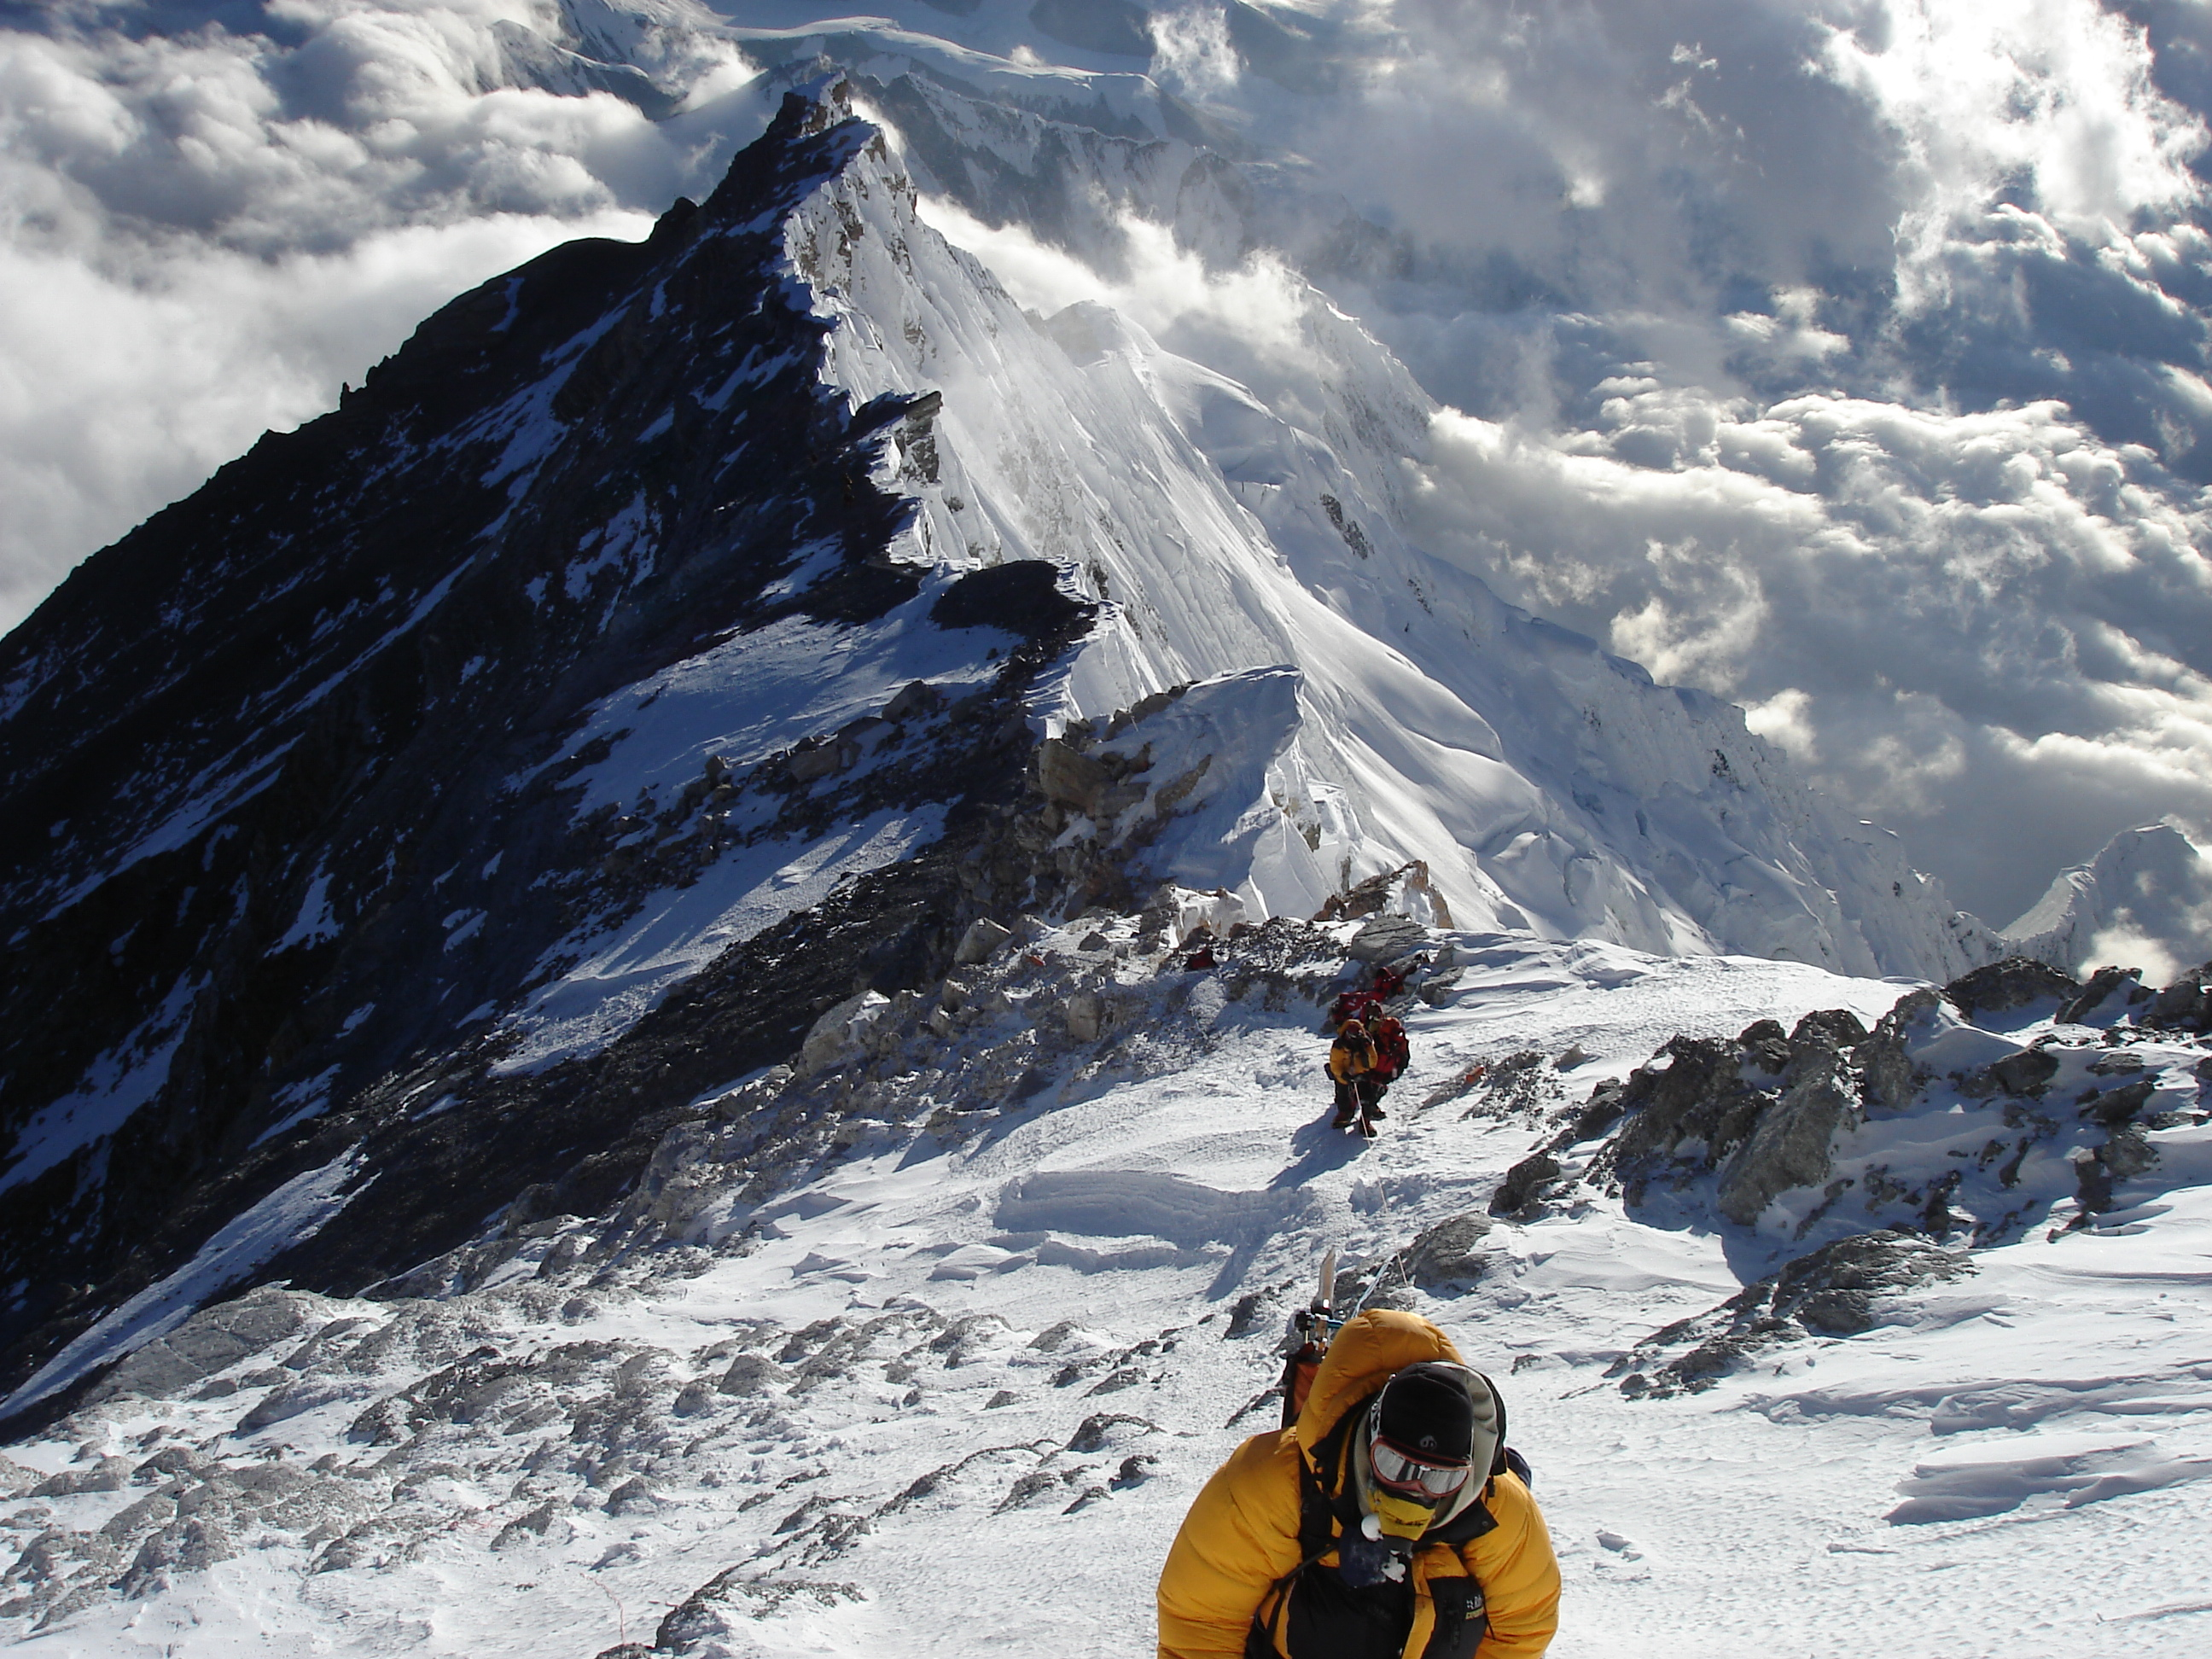 Image: Me [at bottom of pic] approaching the summit.